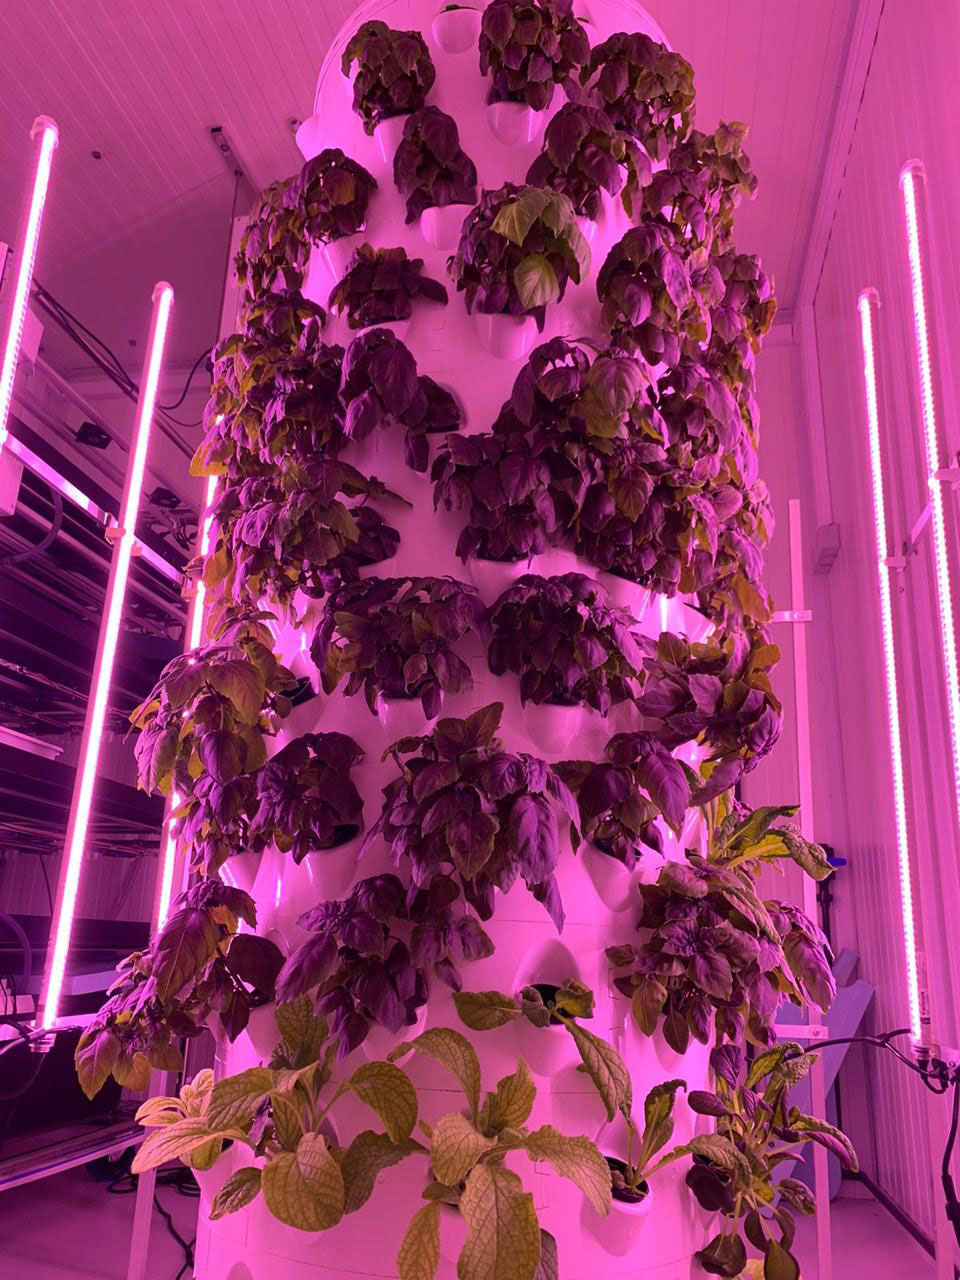 agriculture vertical growing